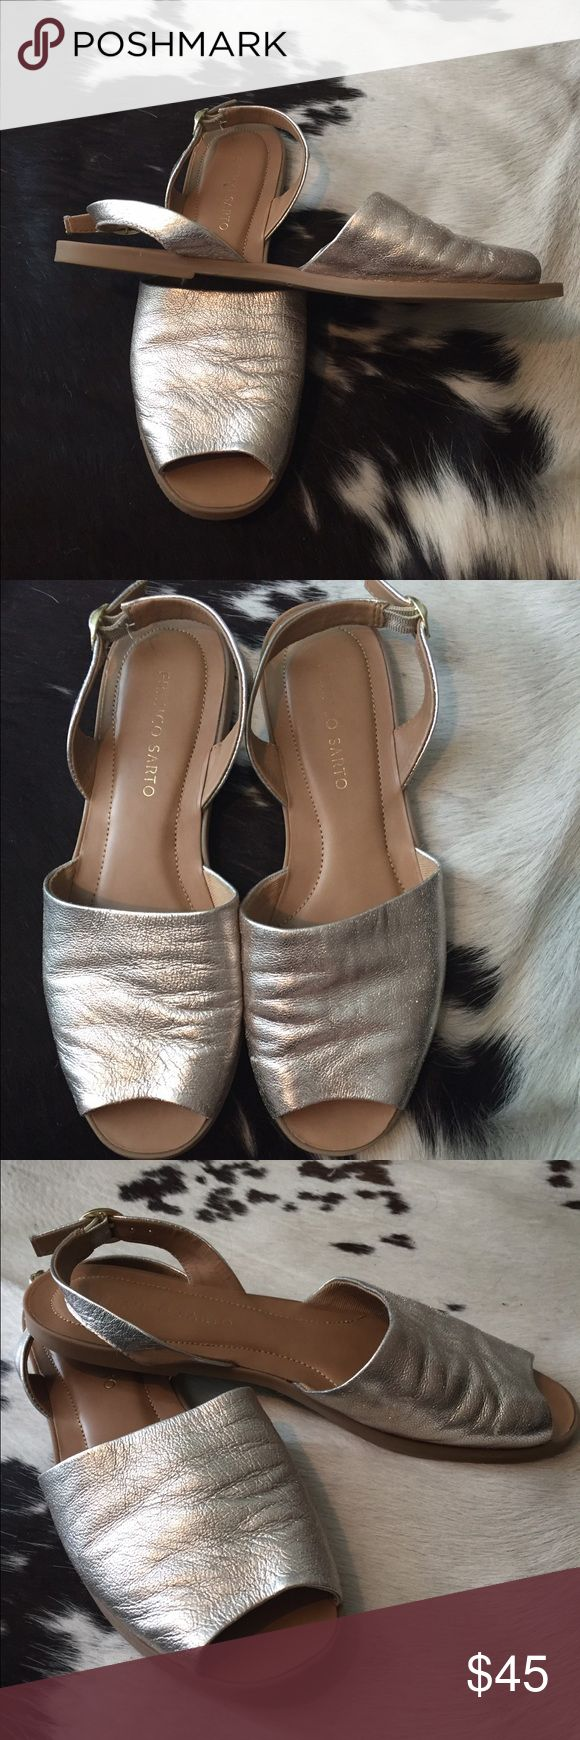 Franco Sarto sandals Gently worn Franco Sarto silver soft leather sandals. Franco Sarto Shoes Sandals